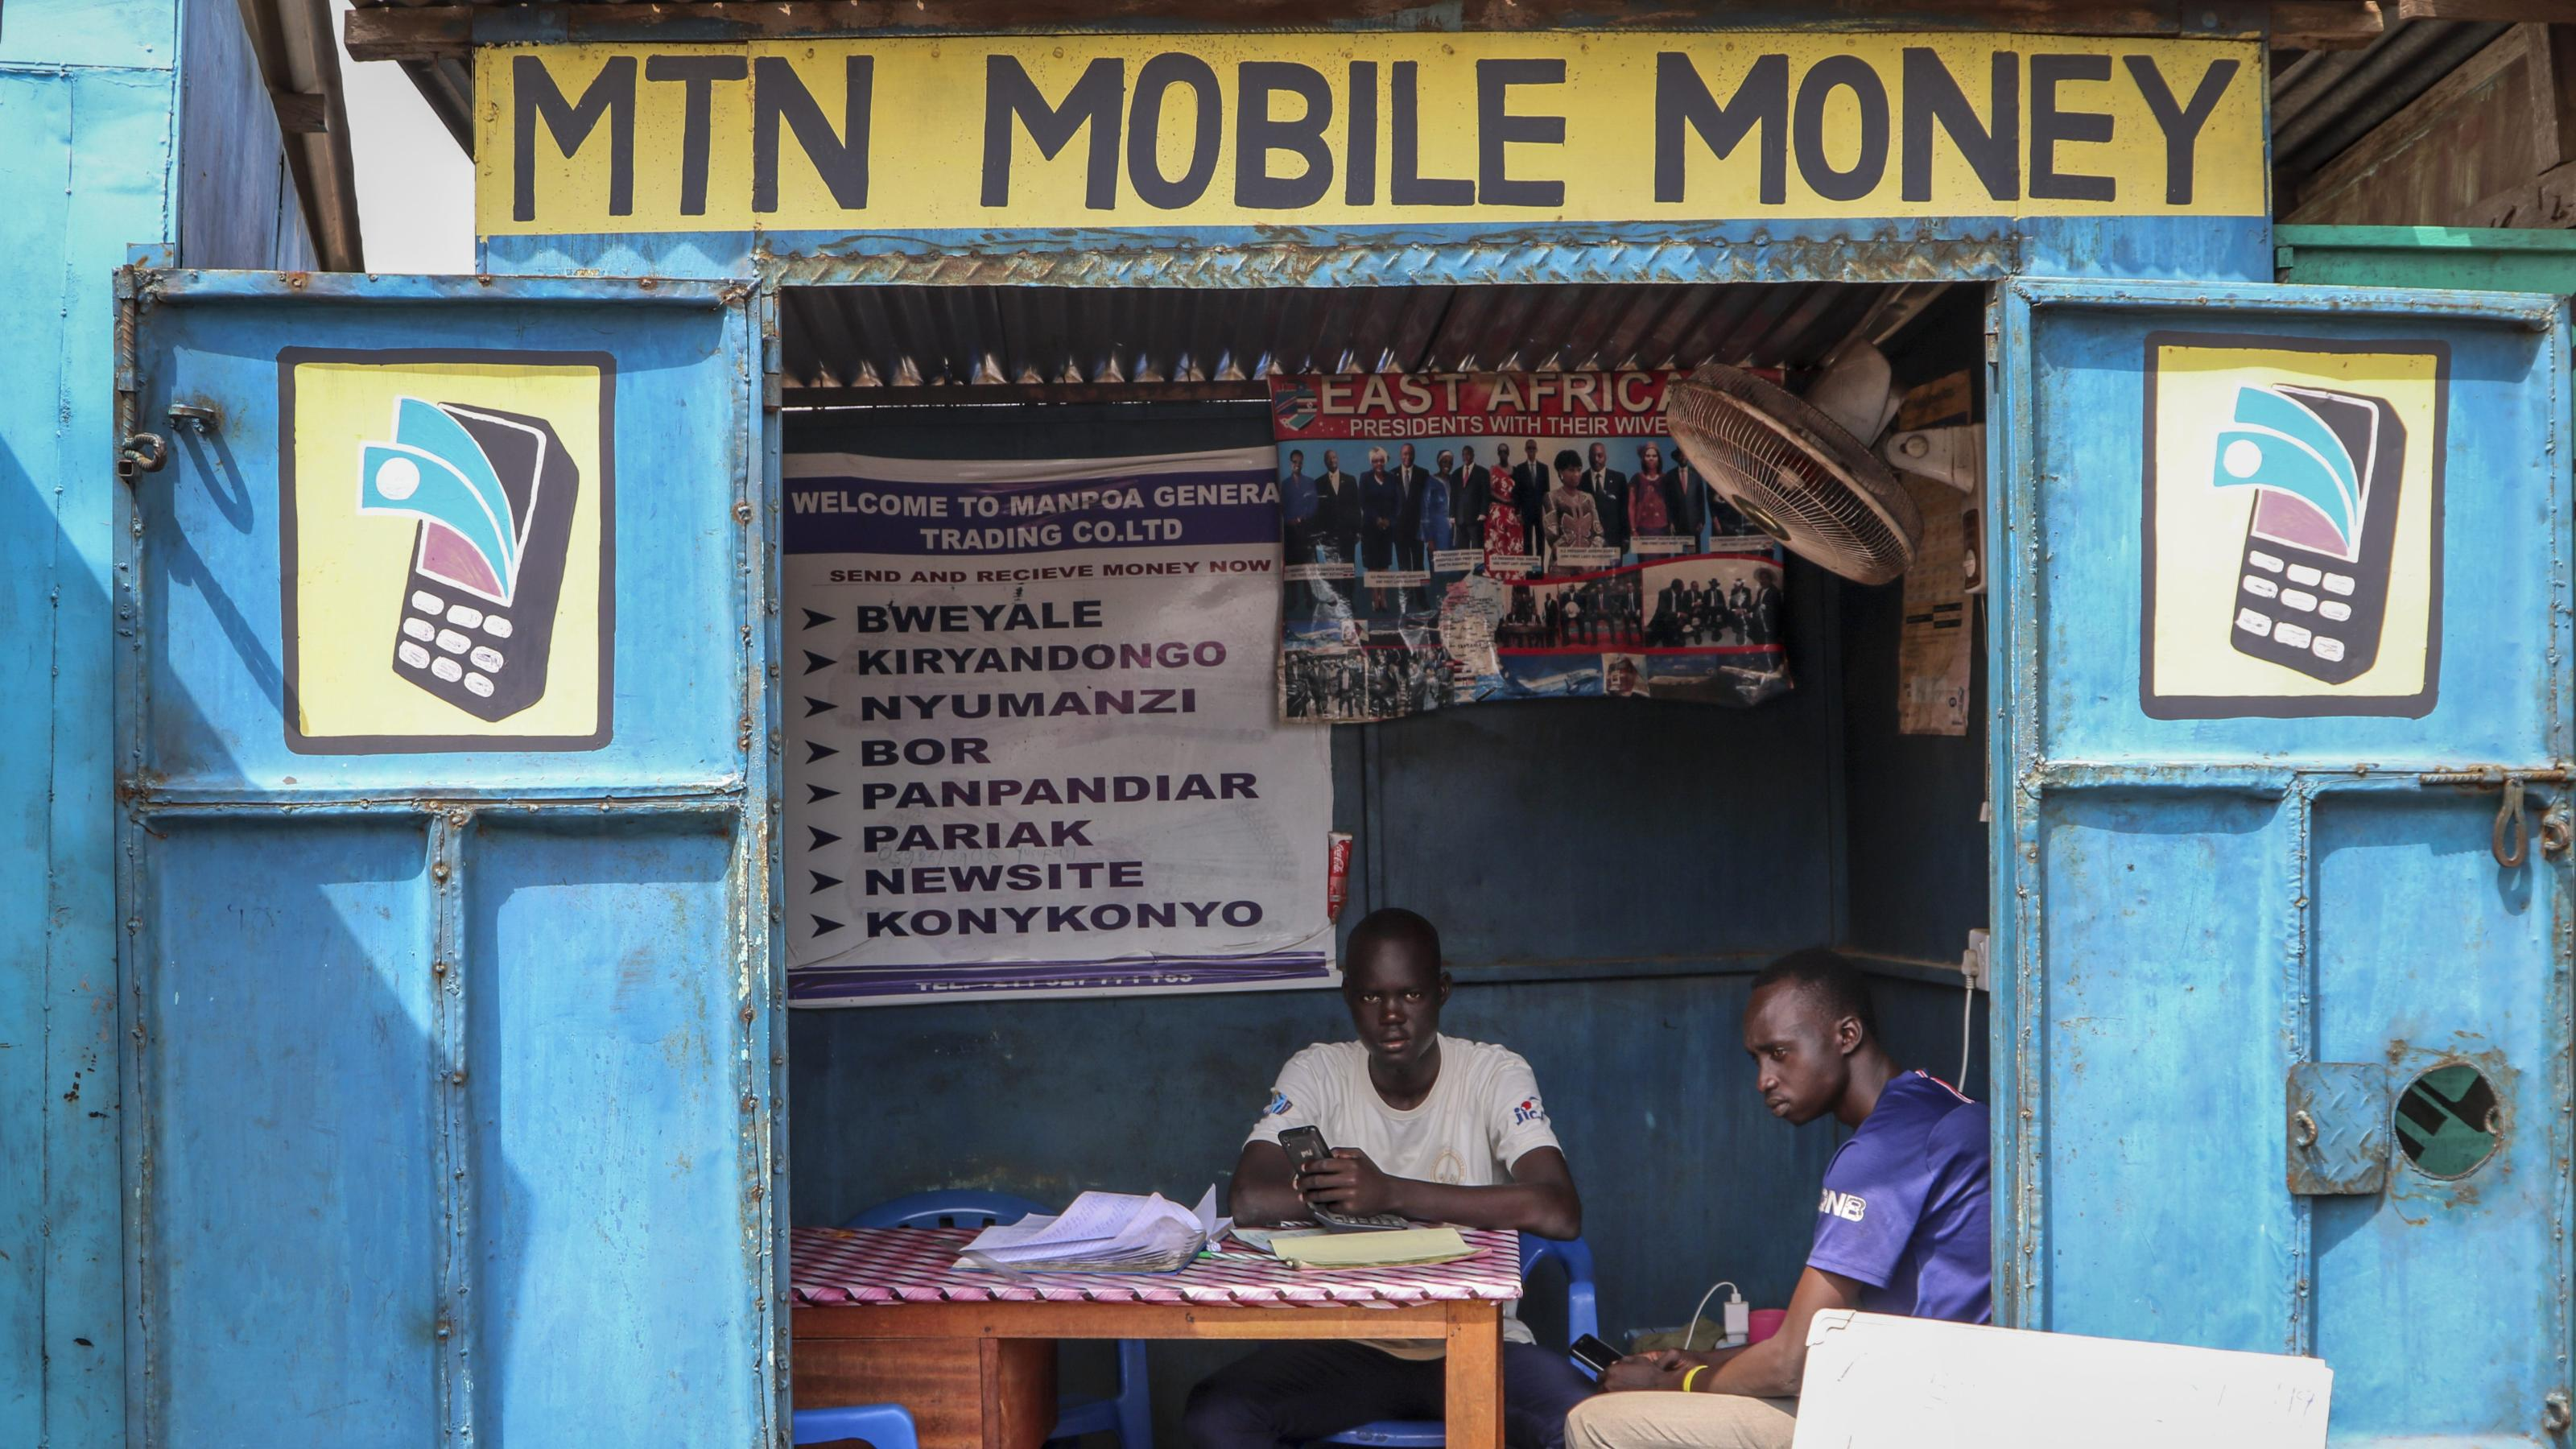 Africa mobile money industry is entering its next stage of growth